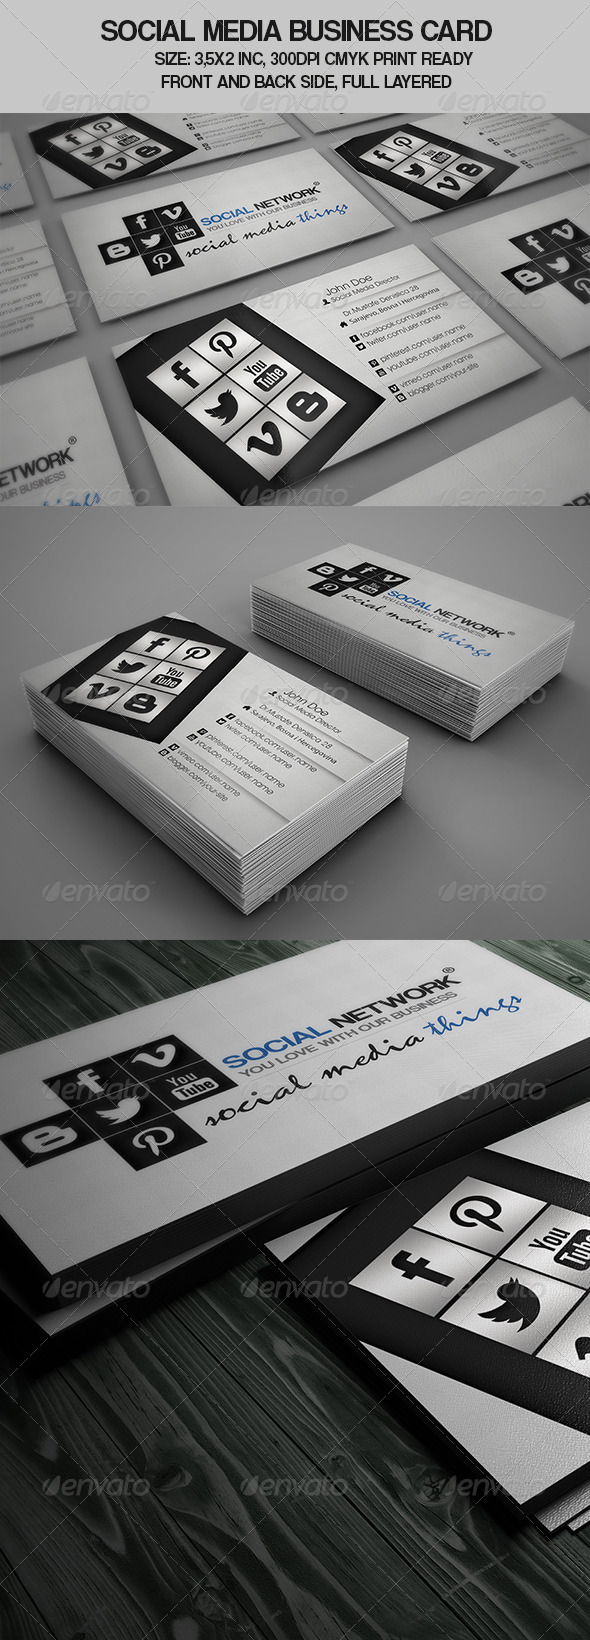 Social Media Business Card - Creative Business Cards